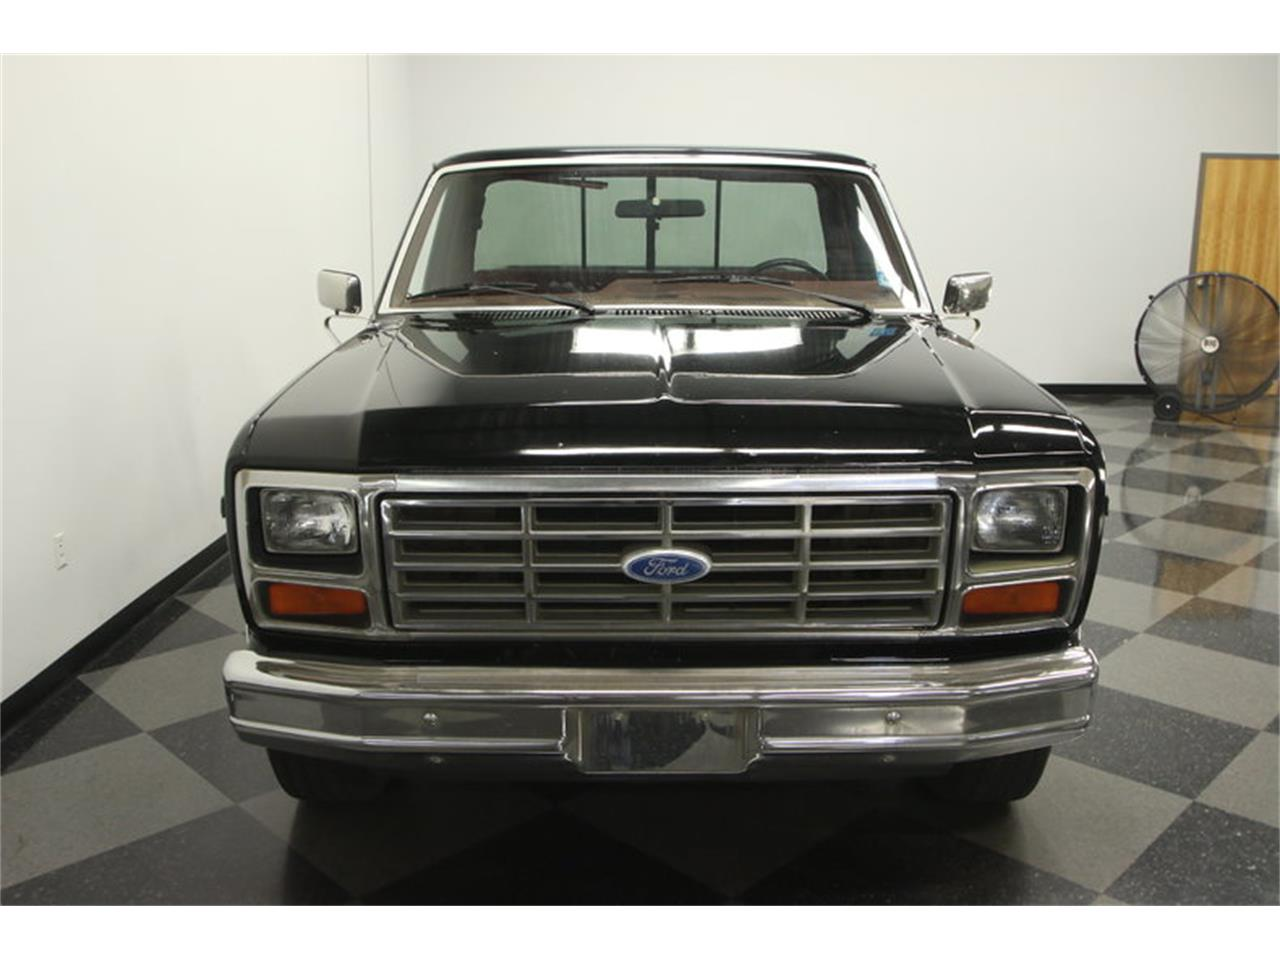 Large Picture of 1985 Ford F-150 XLT Lariat Explorer located in Florida - $12,995.00 - LFBW